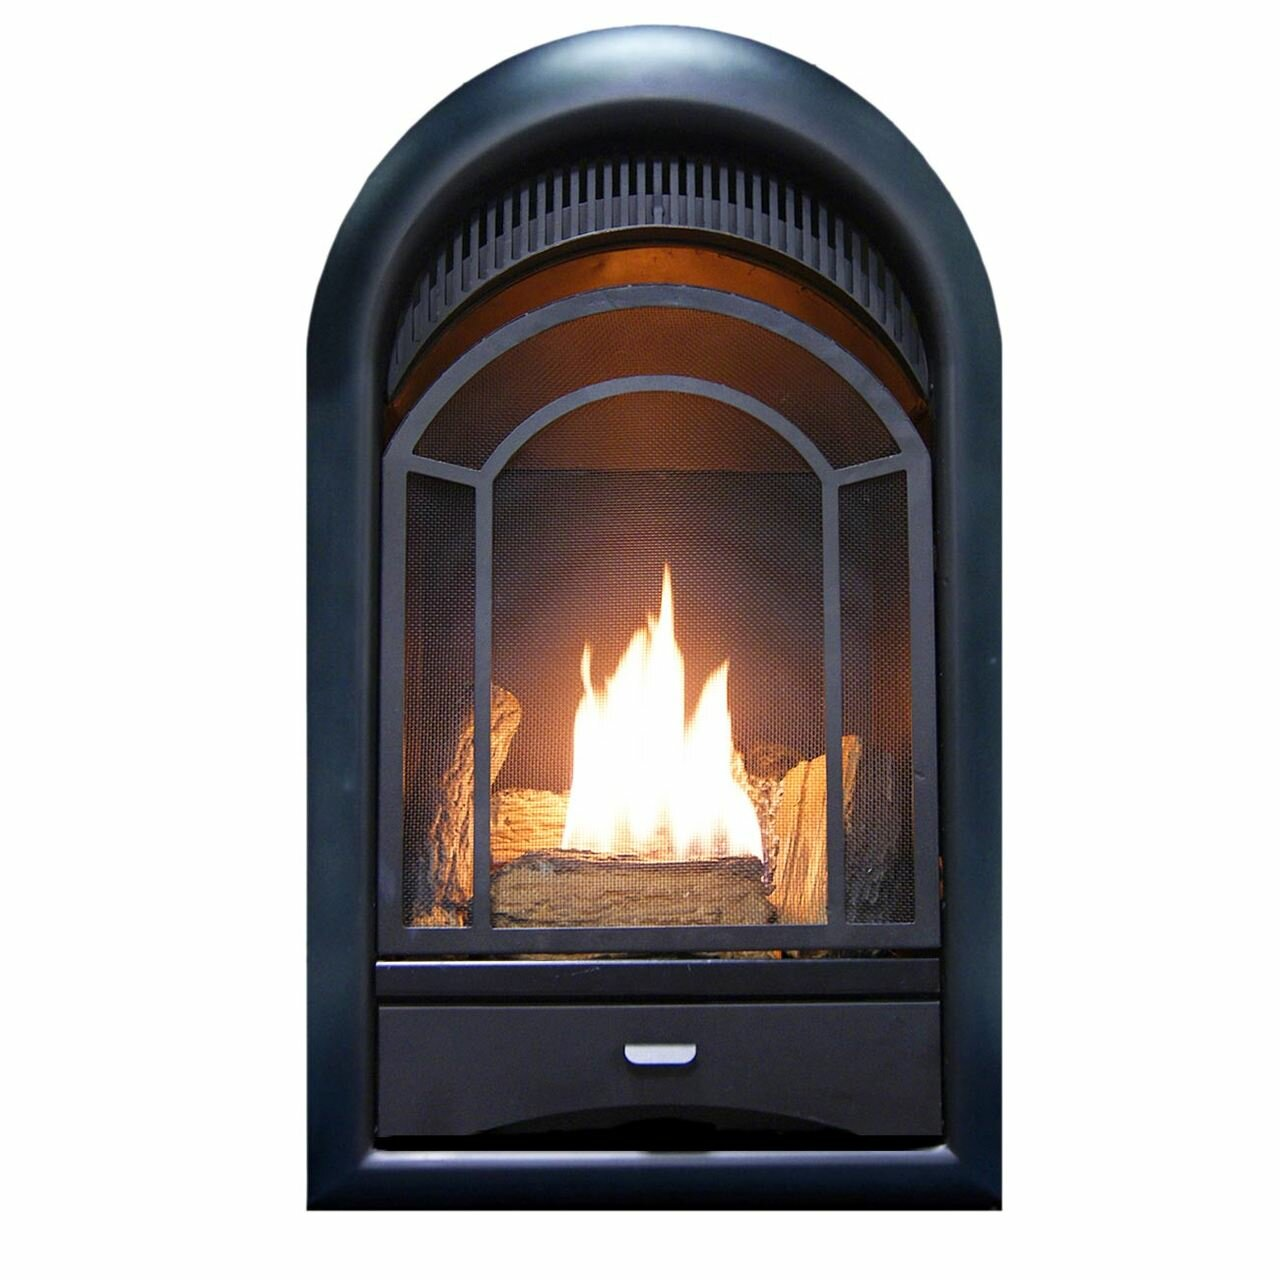 Procom Heating Arched Door Vent Free Propane Natural Gas Fireplace